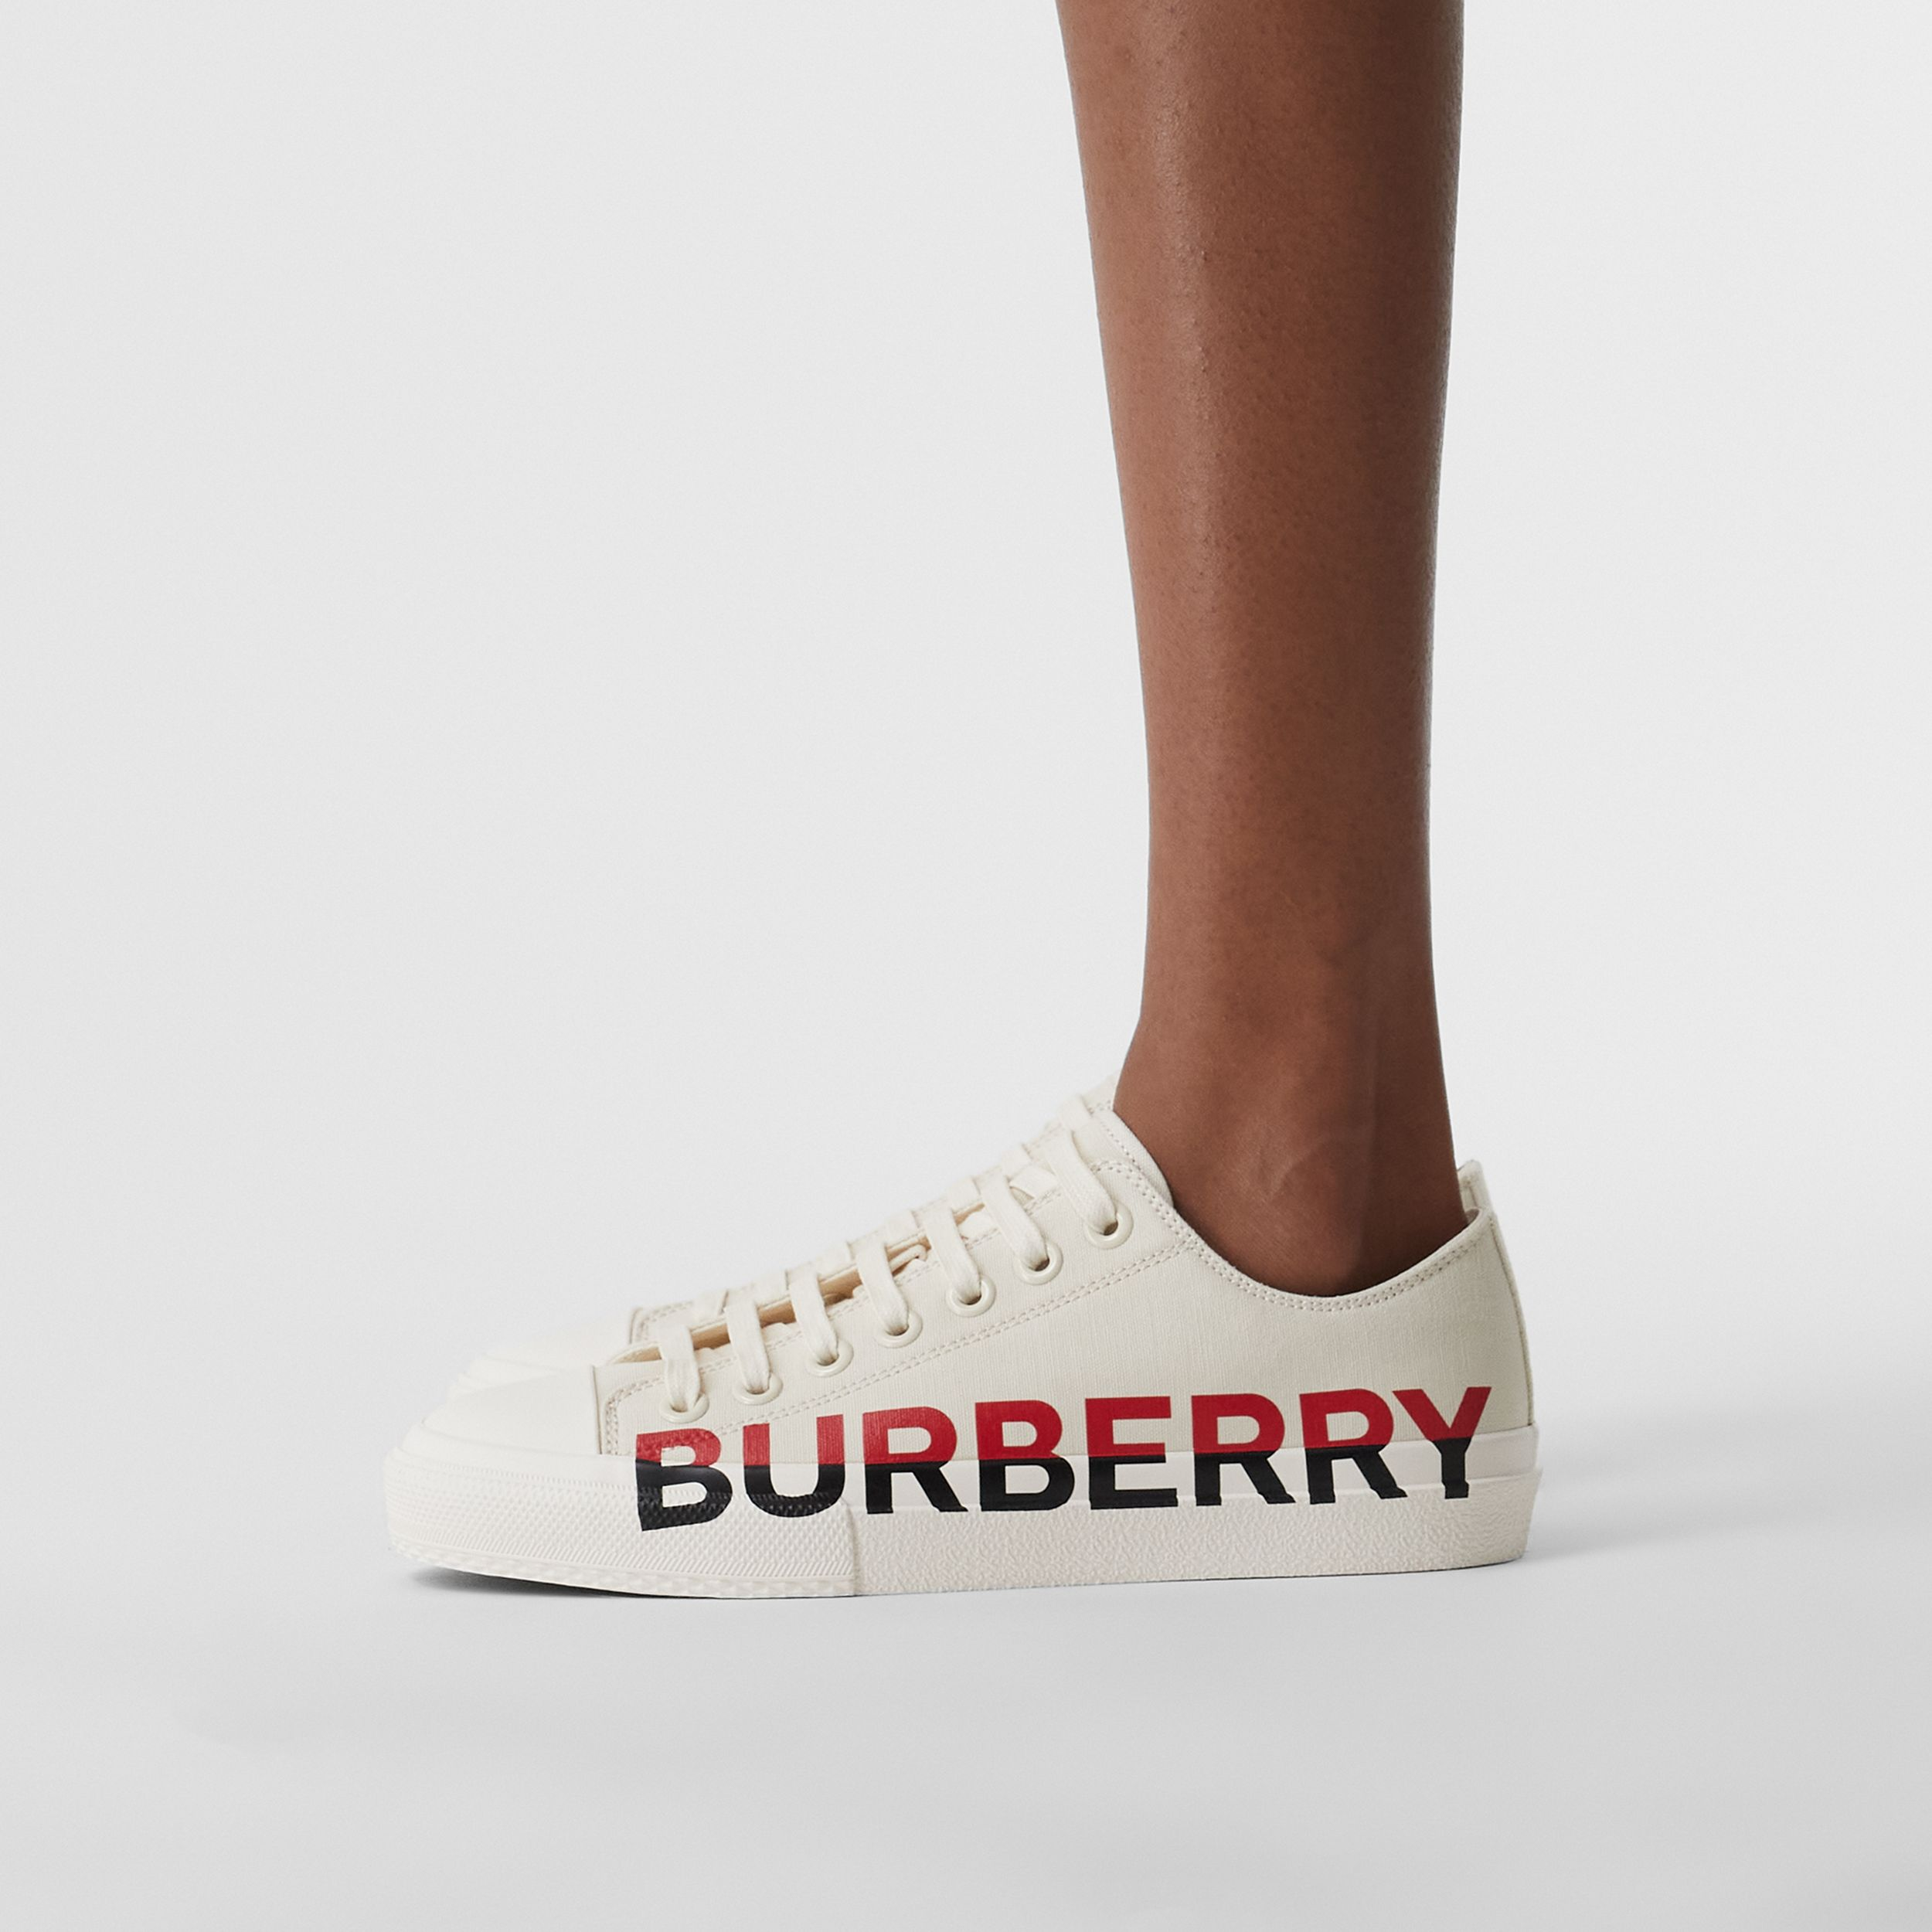 Logo Print Cotton Canvas Sneakers in Cream - Women | Burberry Hong Kong S.A.R. - 3